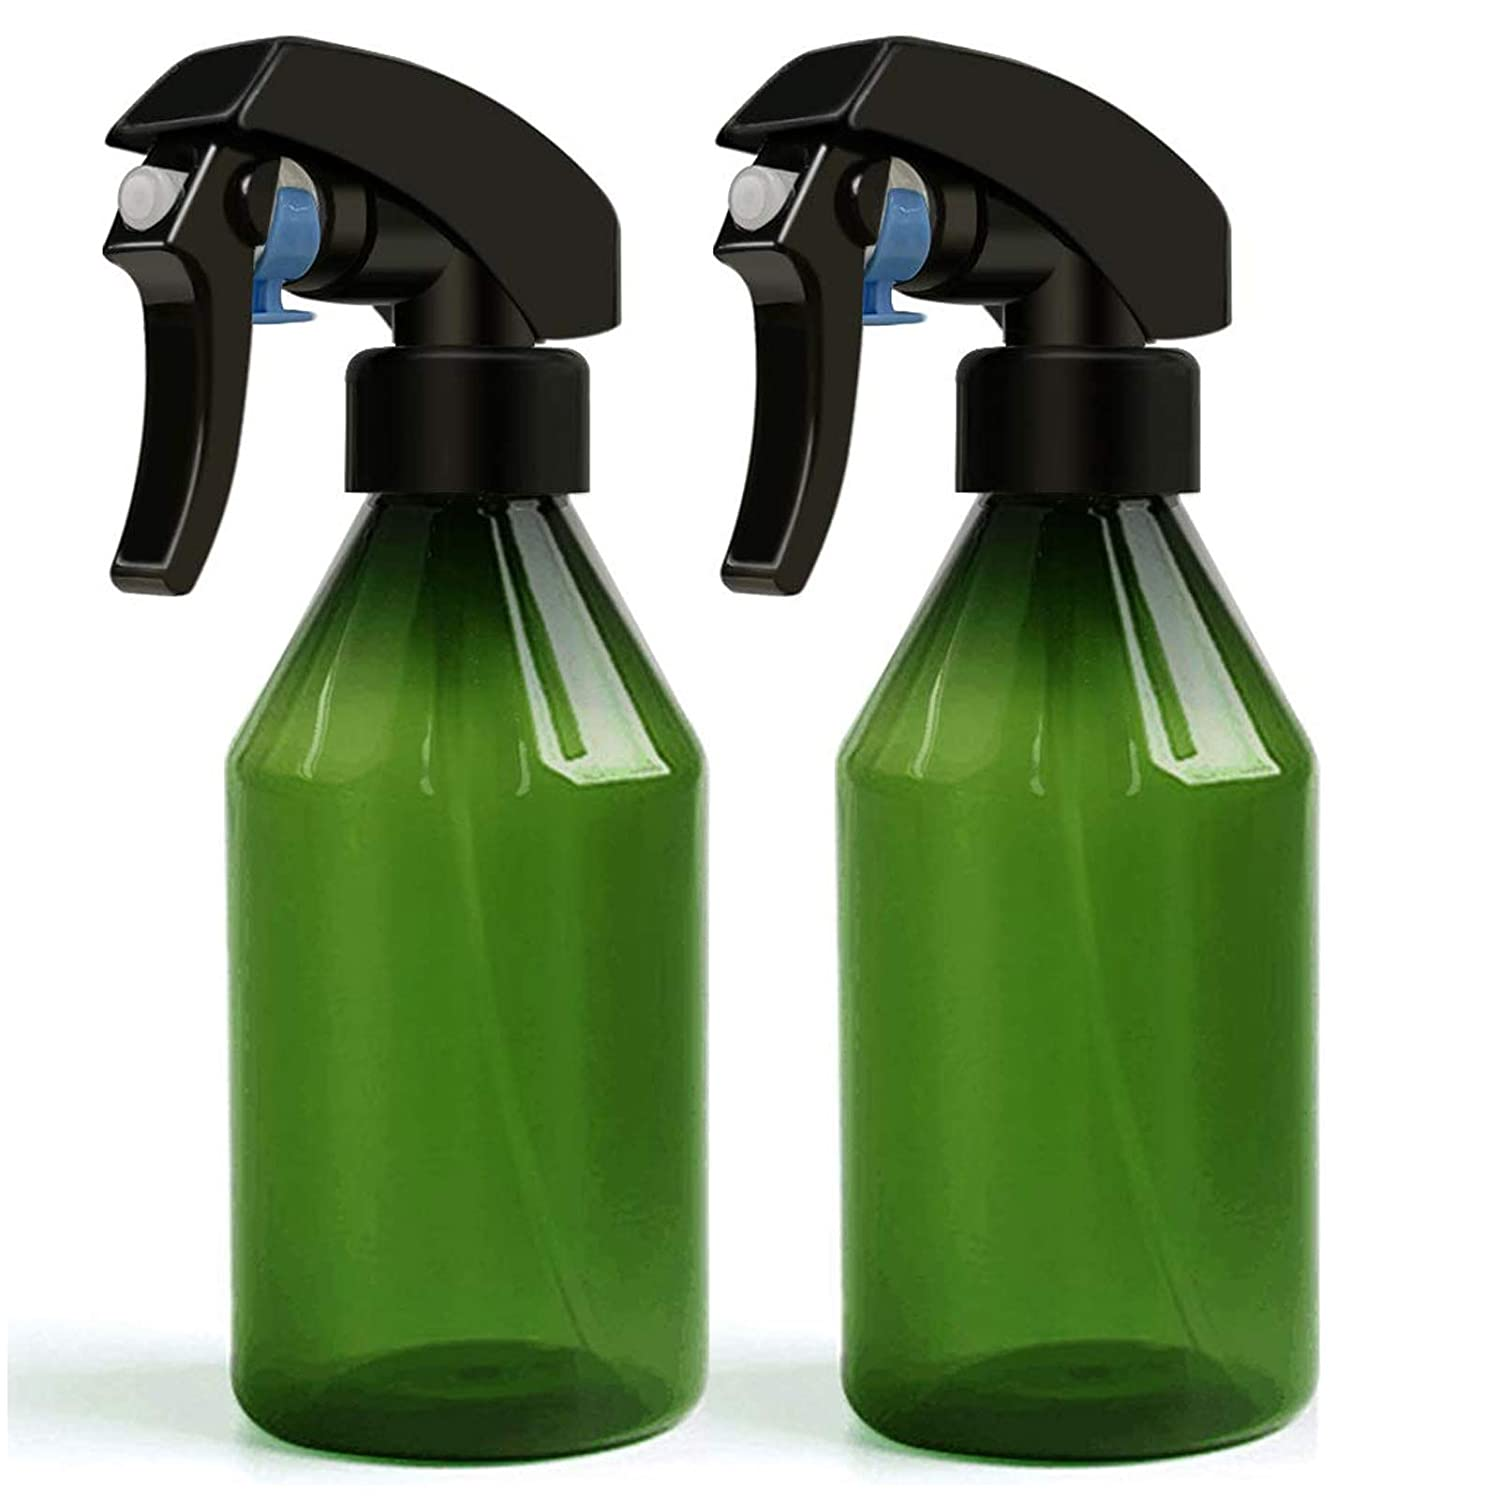 Cosywell National products Plastic Spray Bottles Branded goods 10oz Mister Wat Plant 300ml Empty